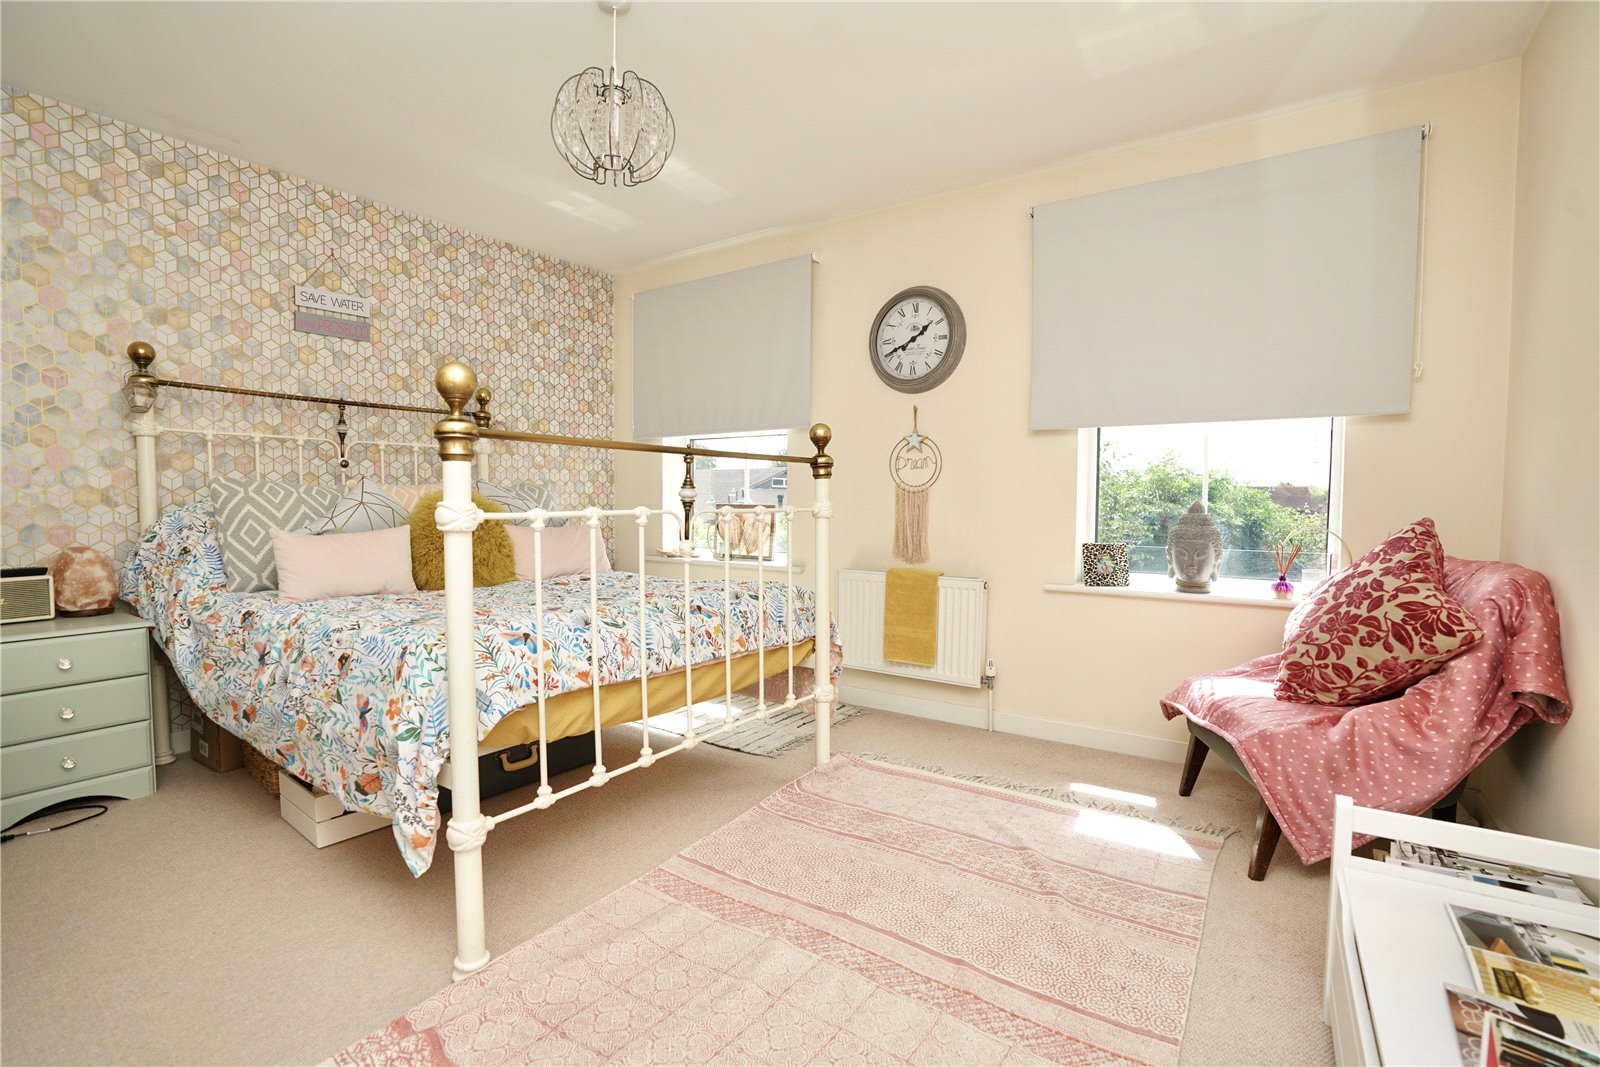 4 bed house for sale in Linton Close, Eaton Socon 4